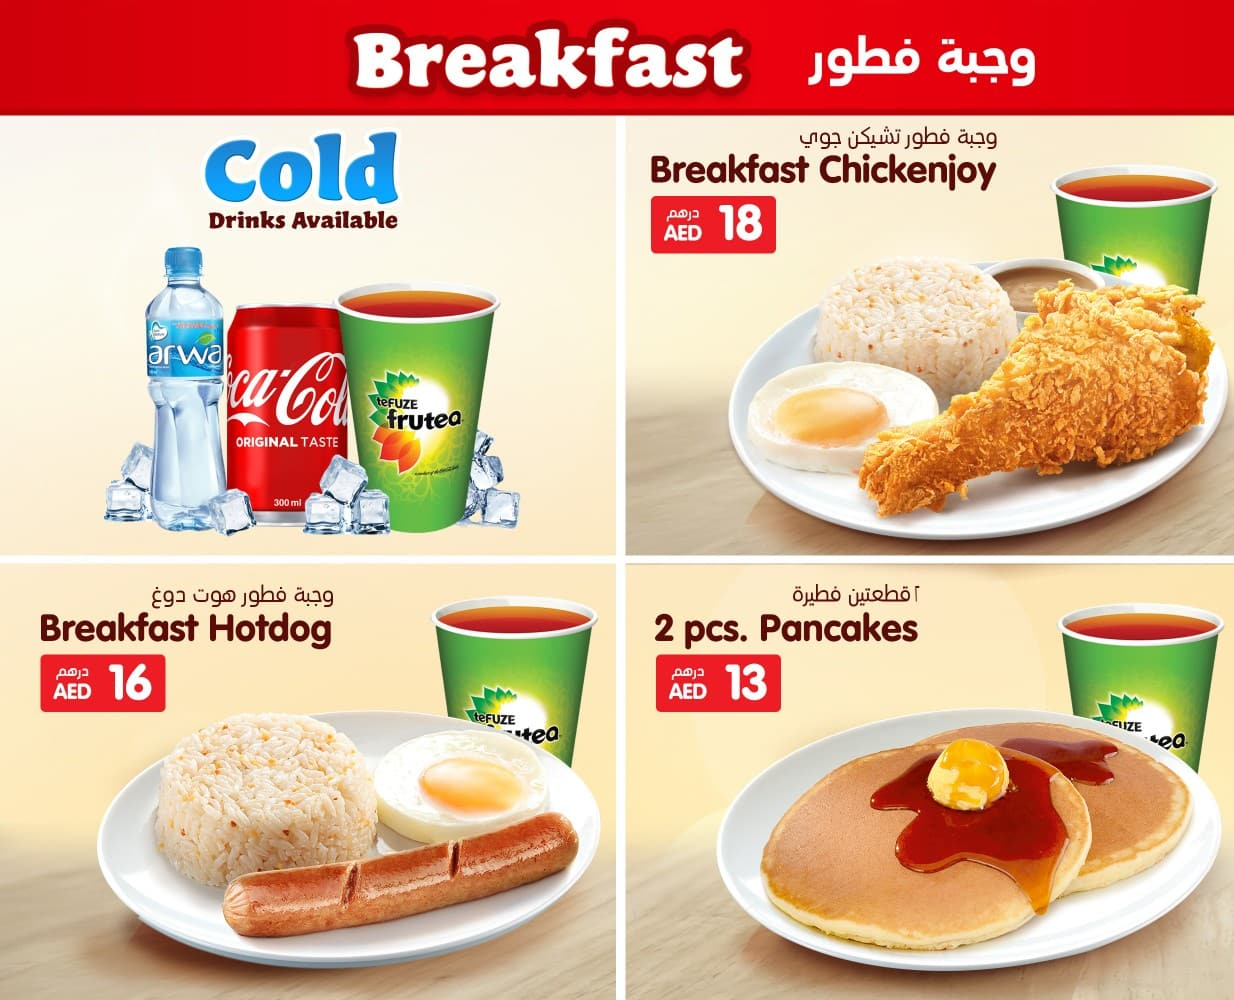 Jollibee Menu Menu For Jollibee Downtown Dubai Dubai Zomato